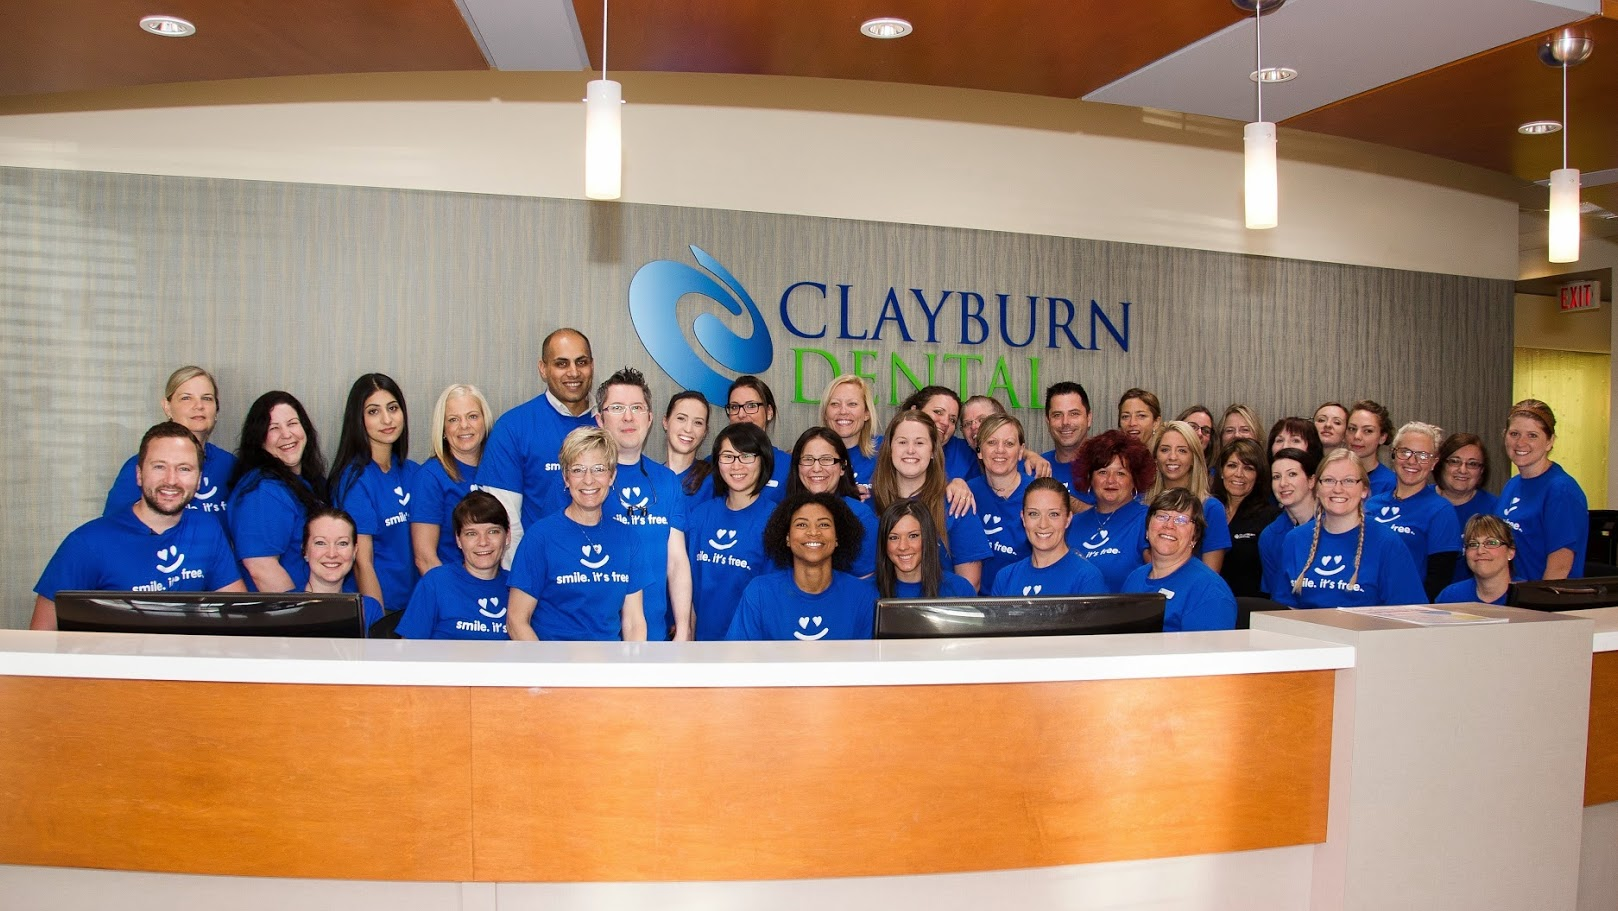 Clayburn Dental